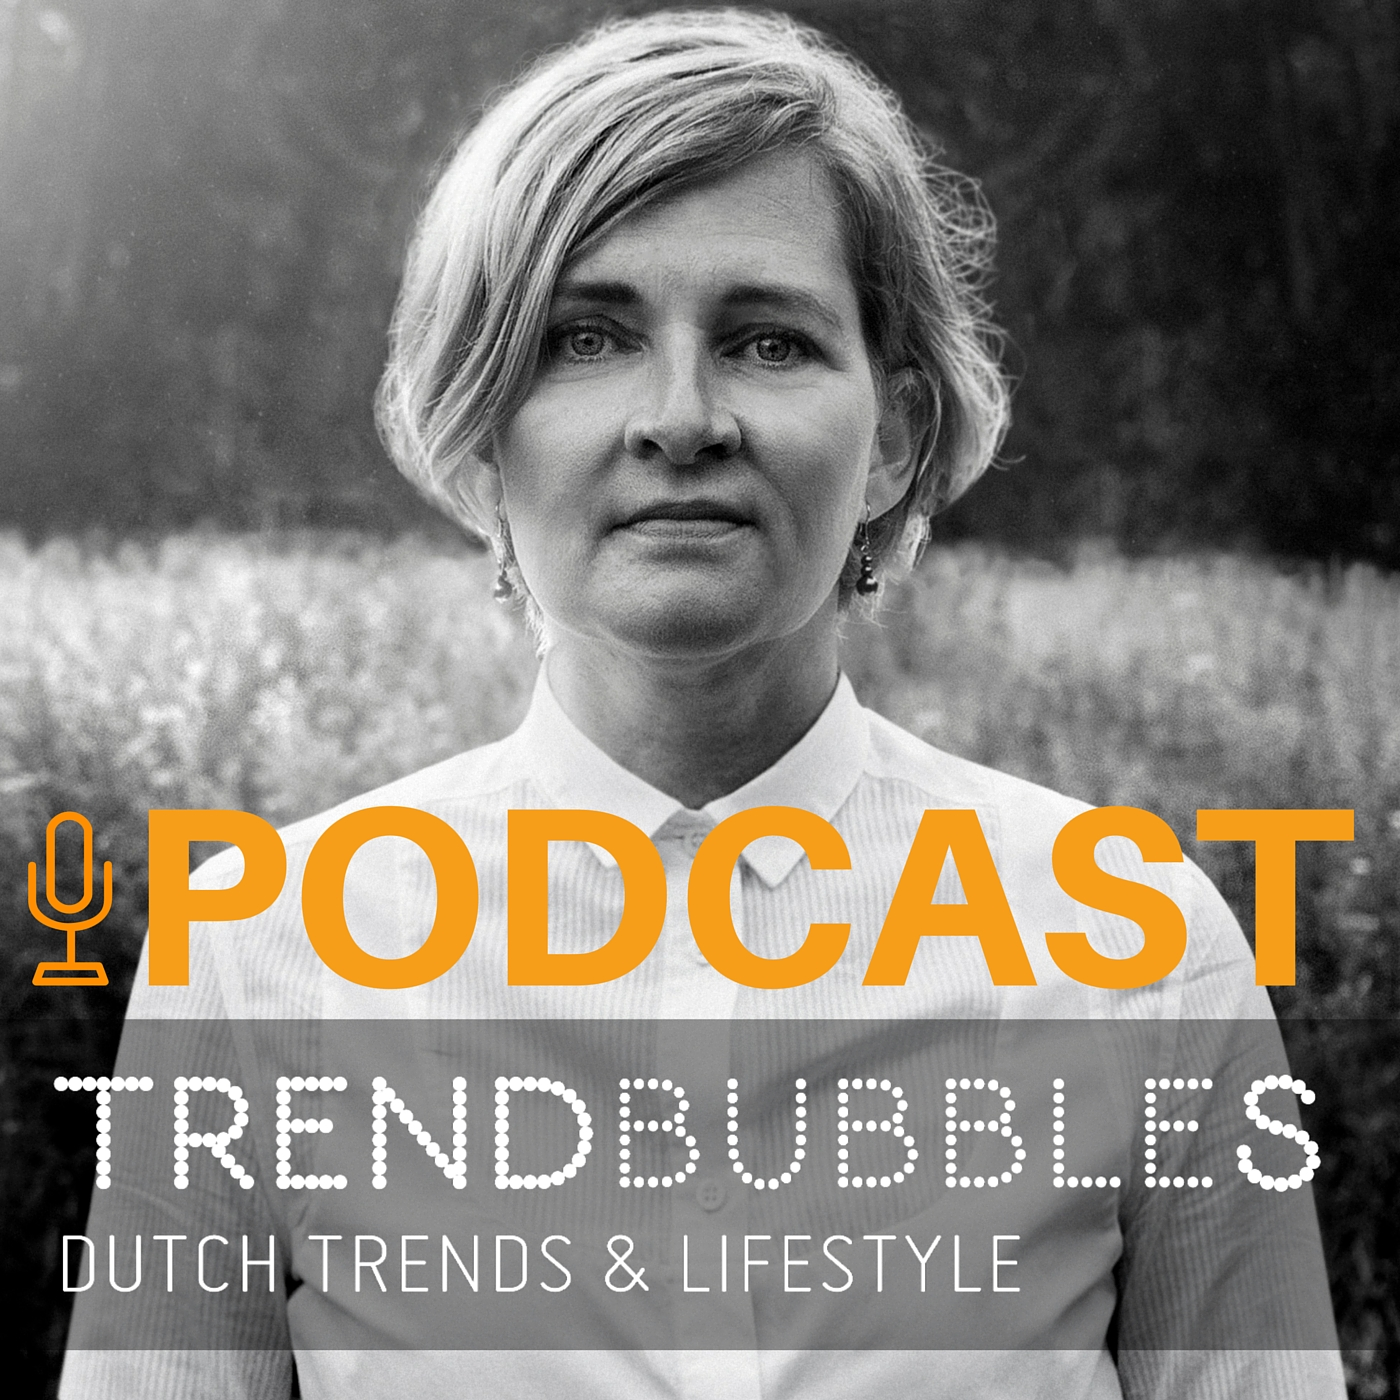 Trendbubbles Dutch, Trends & Lifestyle podcast |trendbubbles.nl